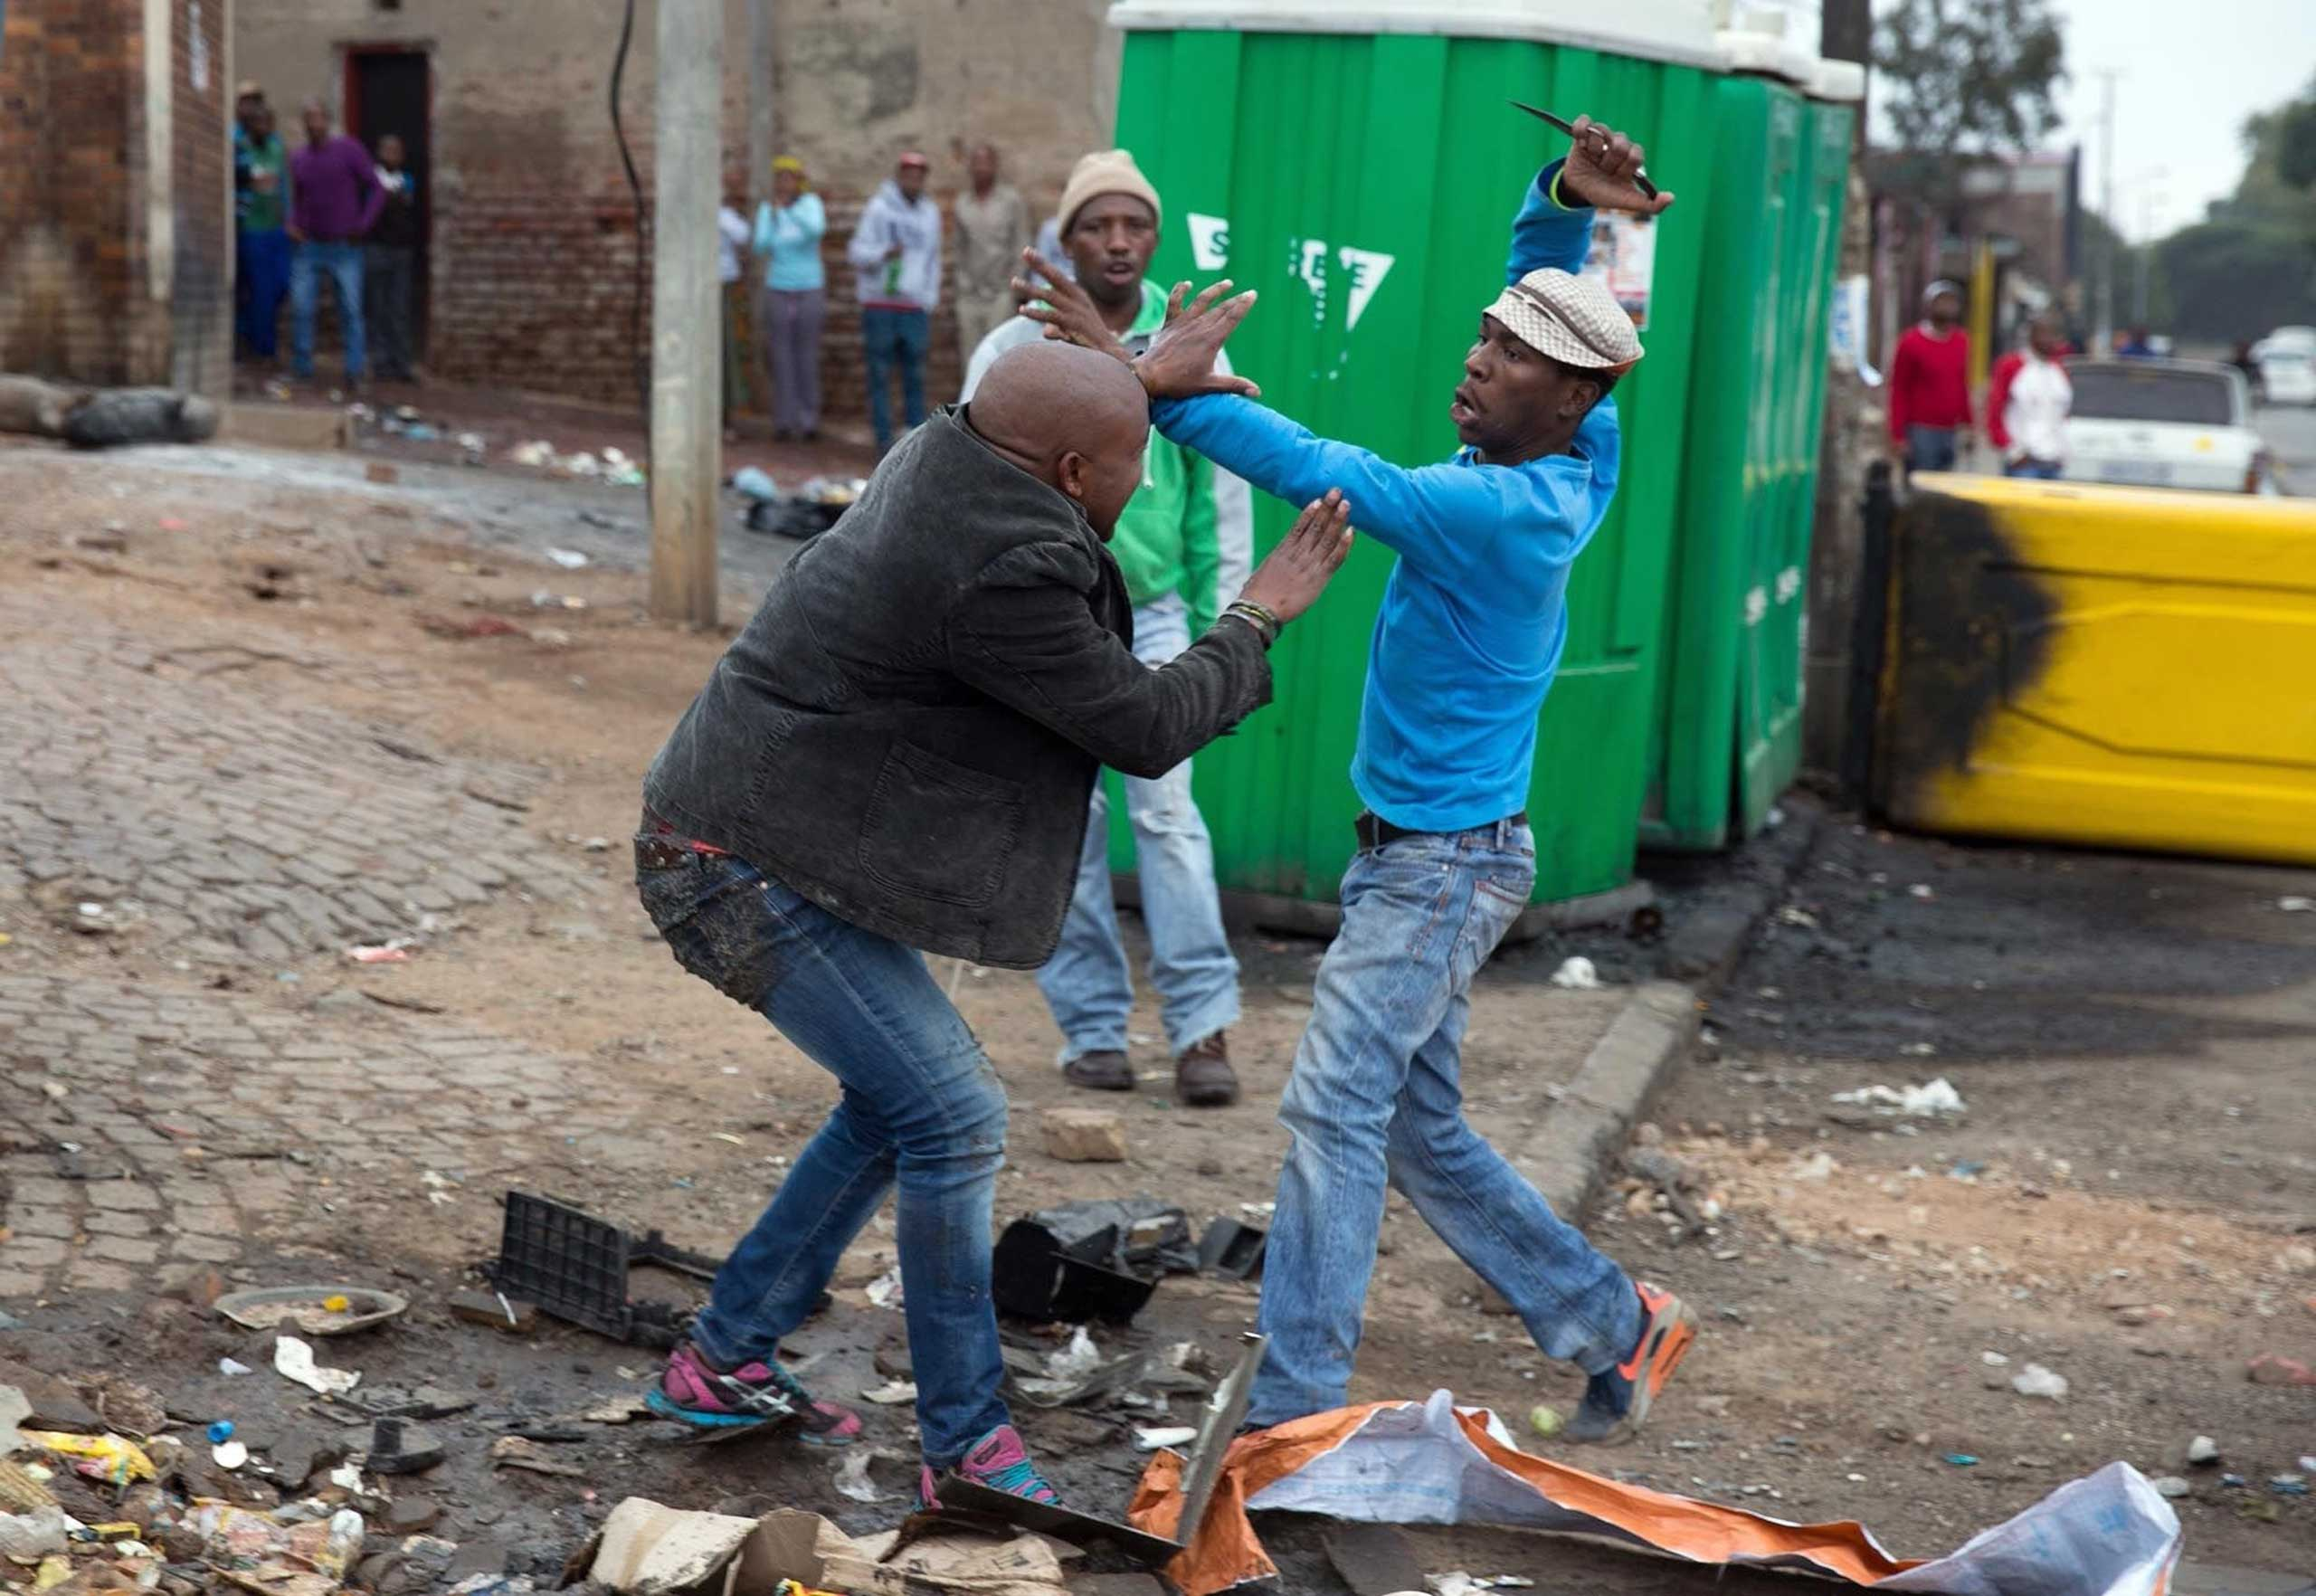 Mozambique national Emmanuel Sithole is attacked by men in Alexandra township during anti-immigrant violence in Johannesburg on April 18, 2015. He later died of his injuries.